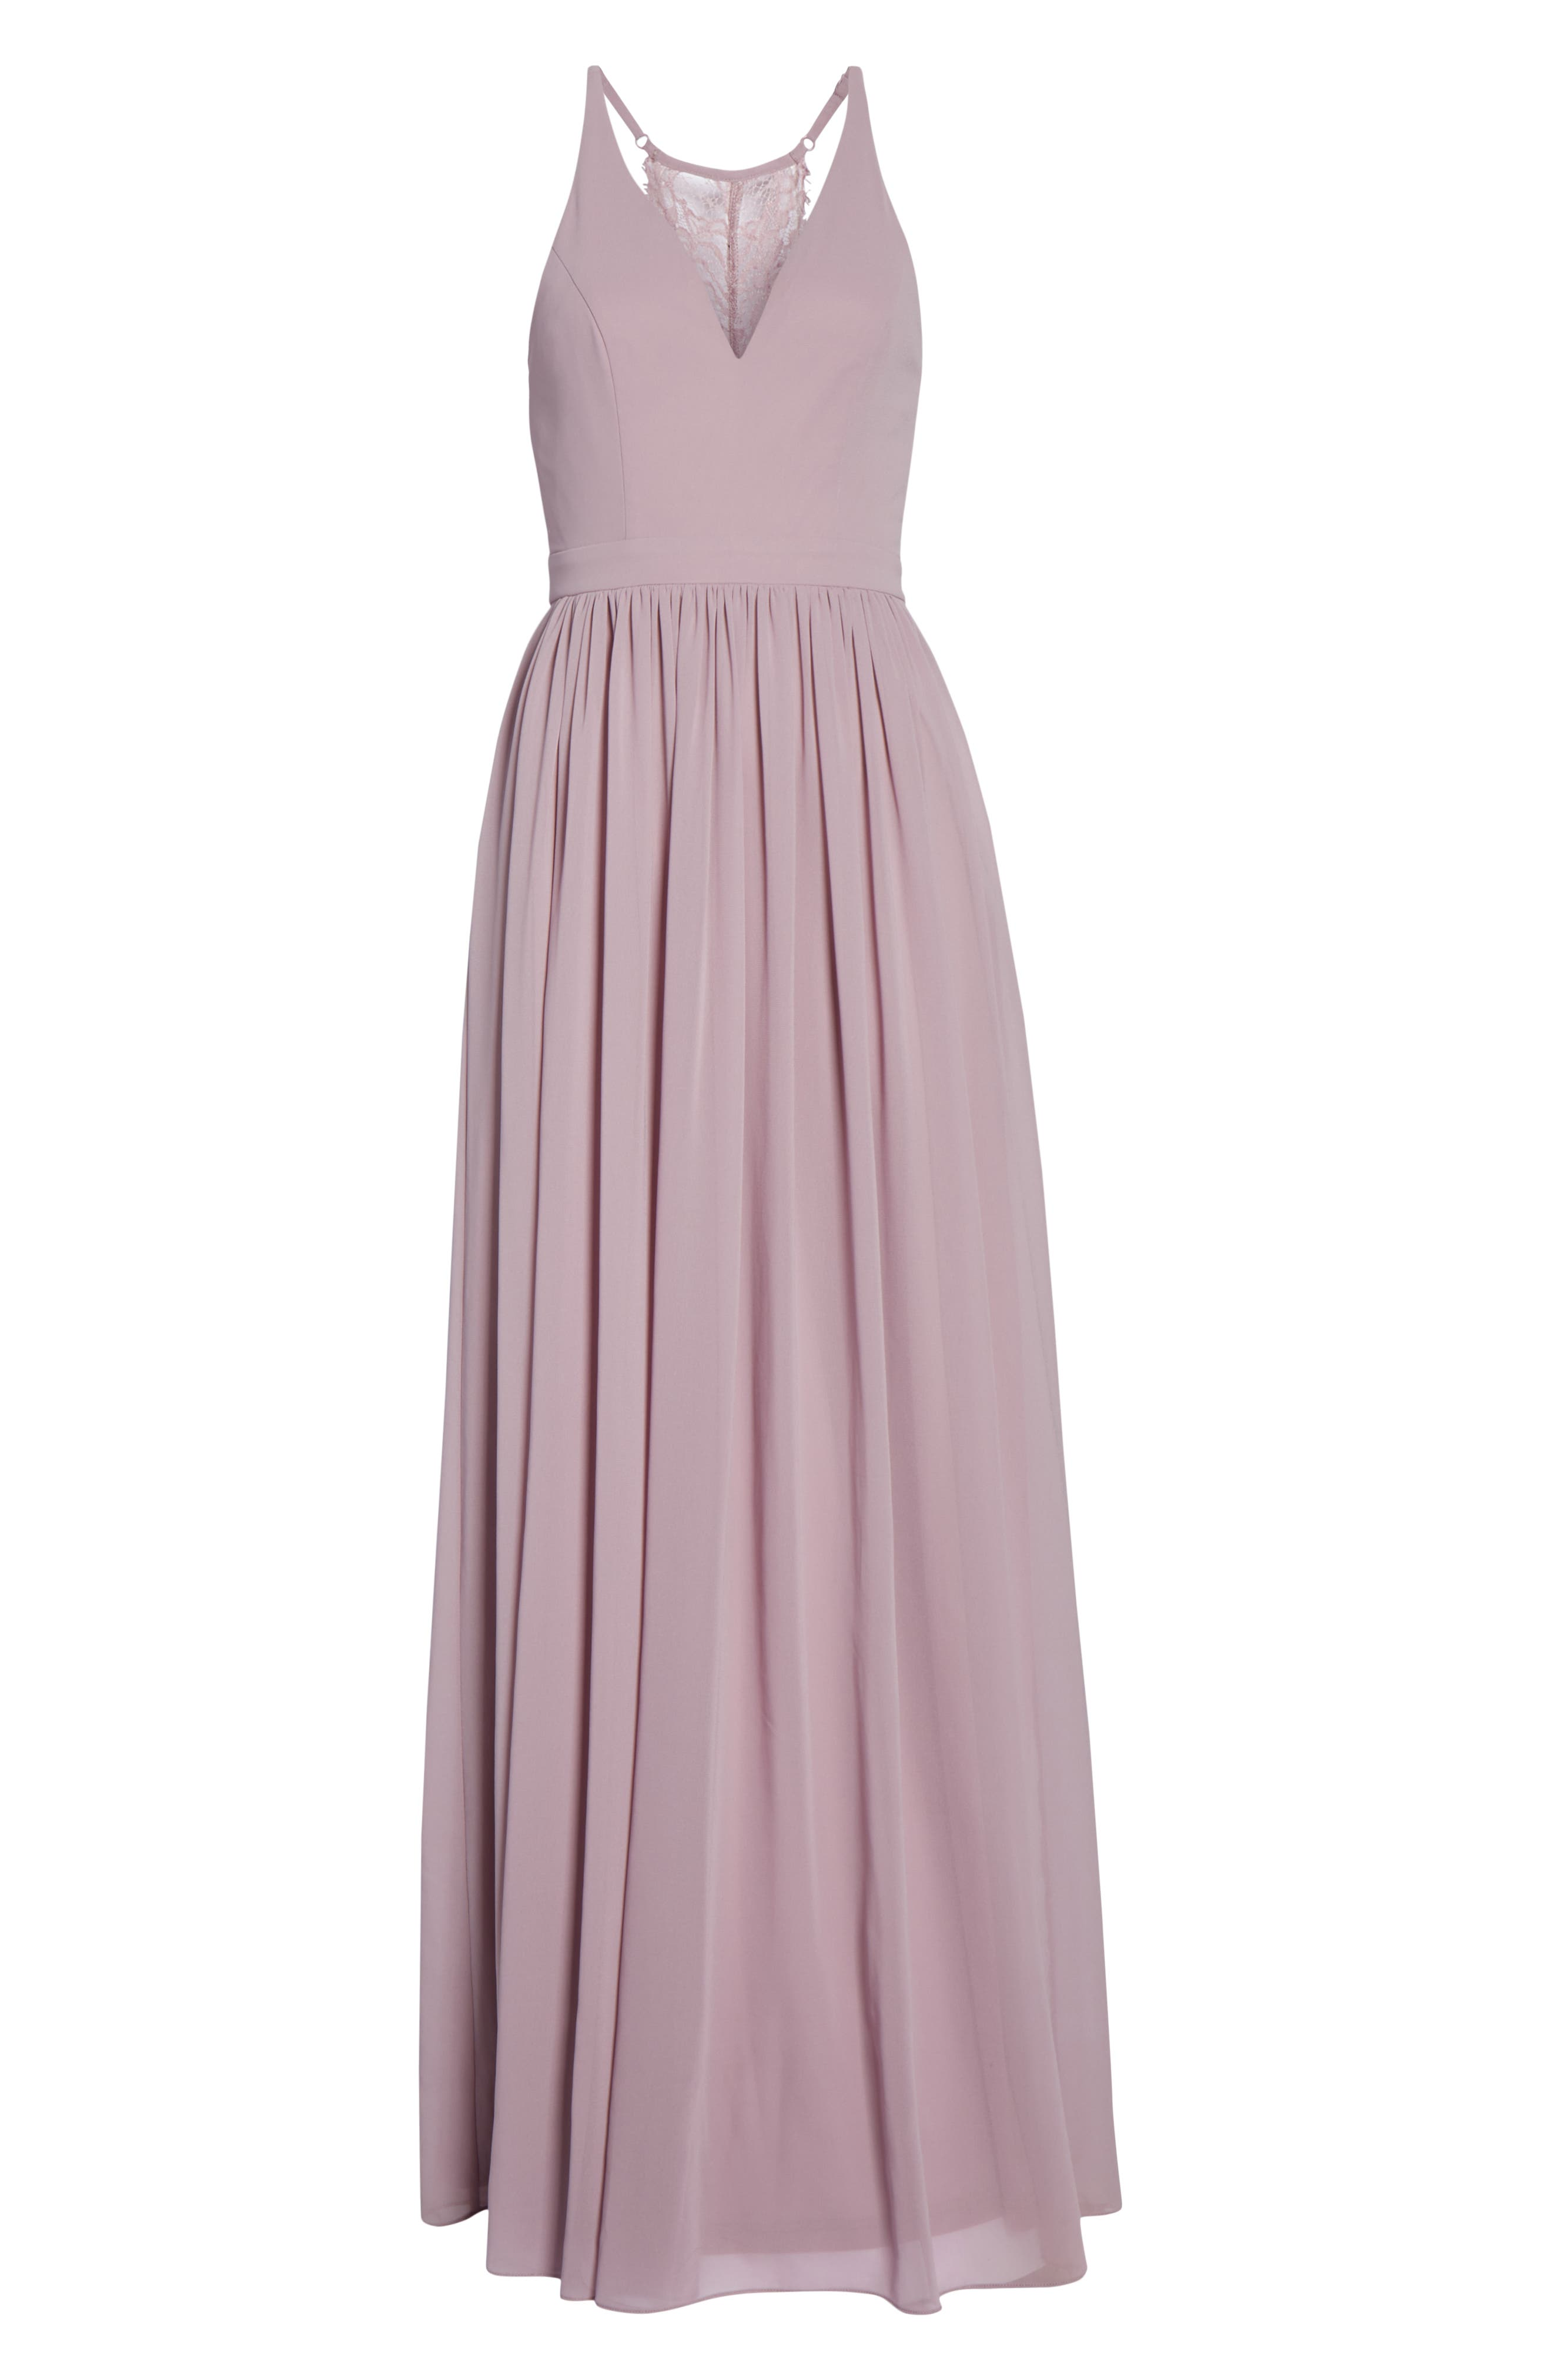 LULUS, Everlasting Beauty Lace Back Chiffon Gown, Alternate thumbnail 7, color, LAVENDER